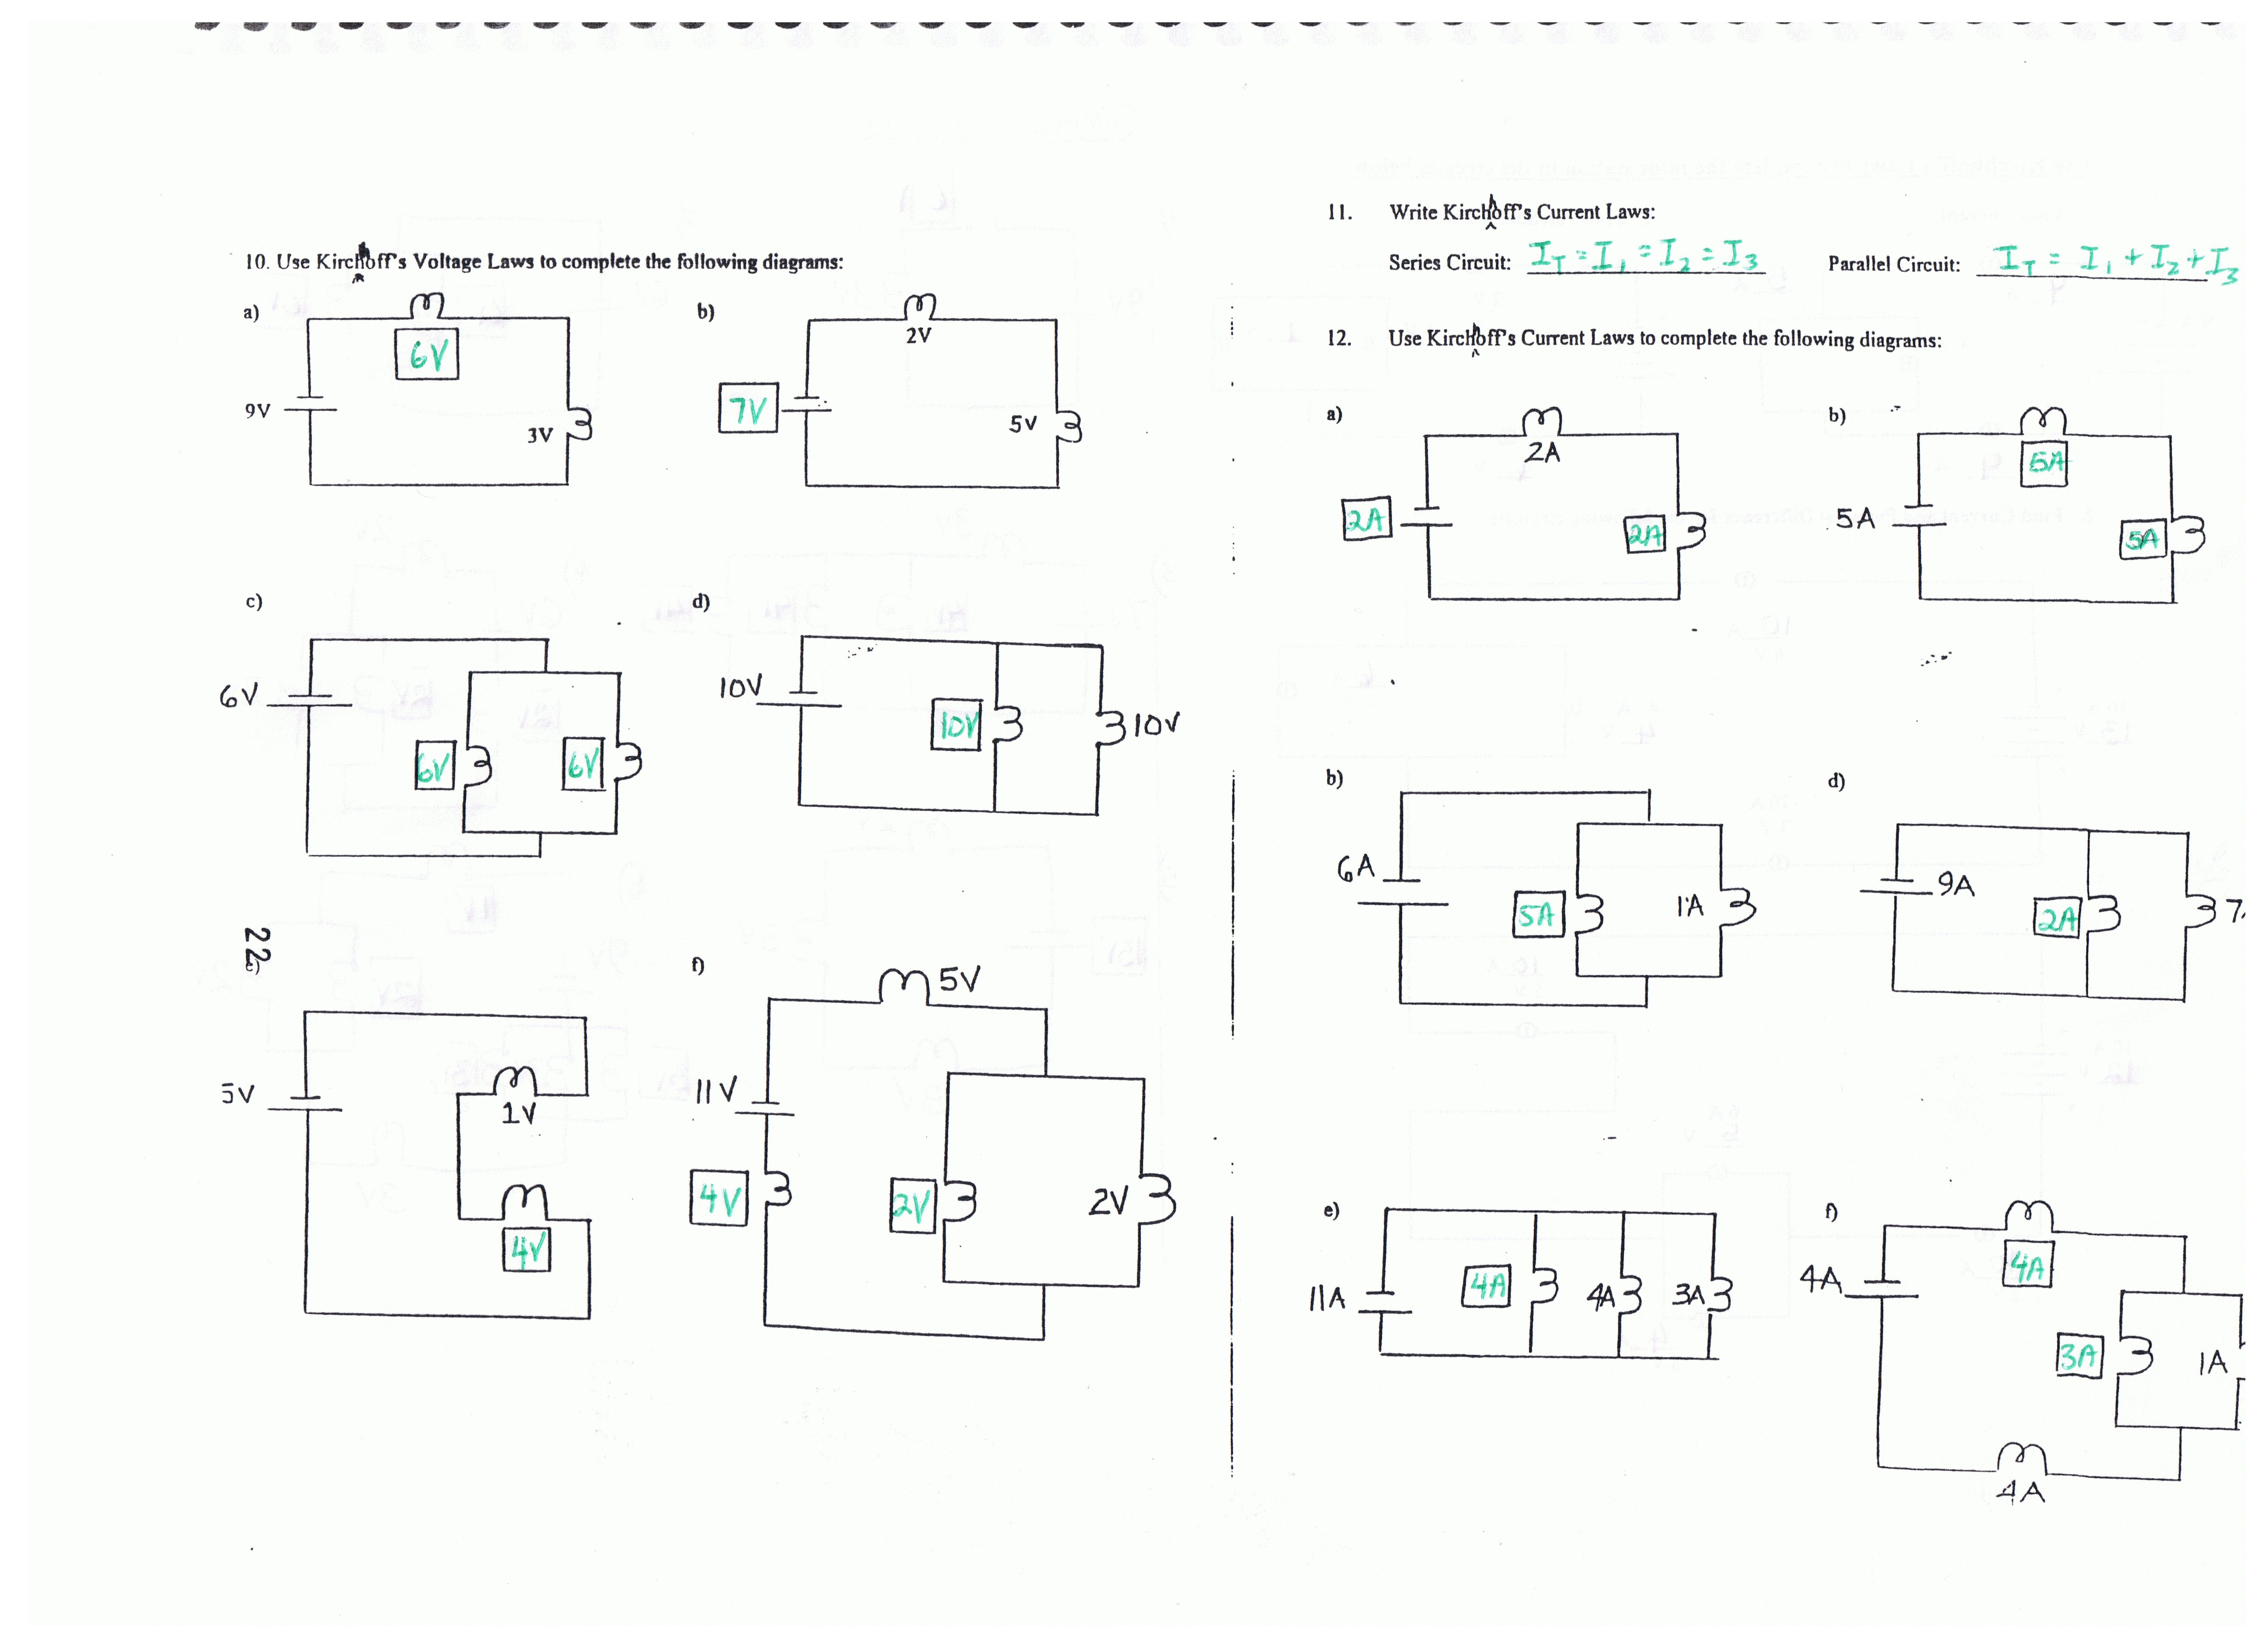 Electric Fence Schematic Diagram Diagrams Charger Circuit Worksheet Answers Block And Circuits Worksheets